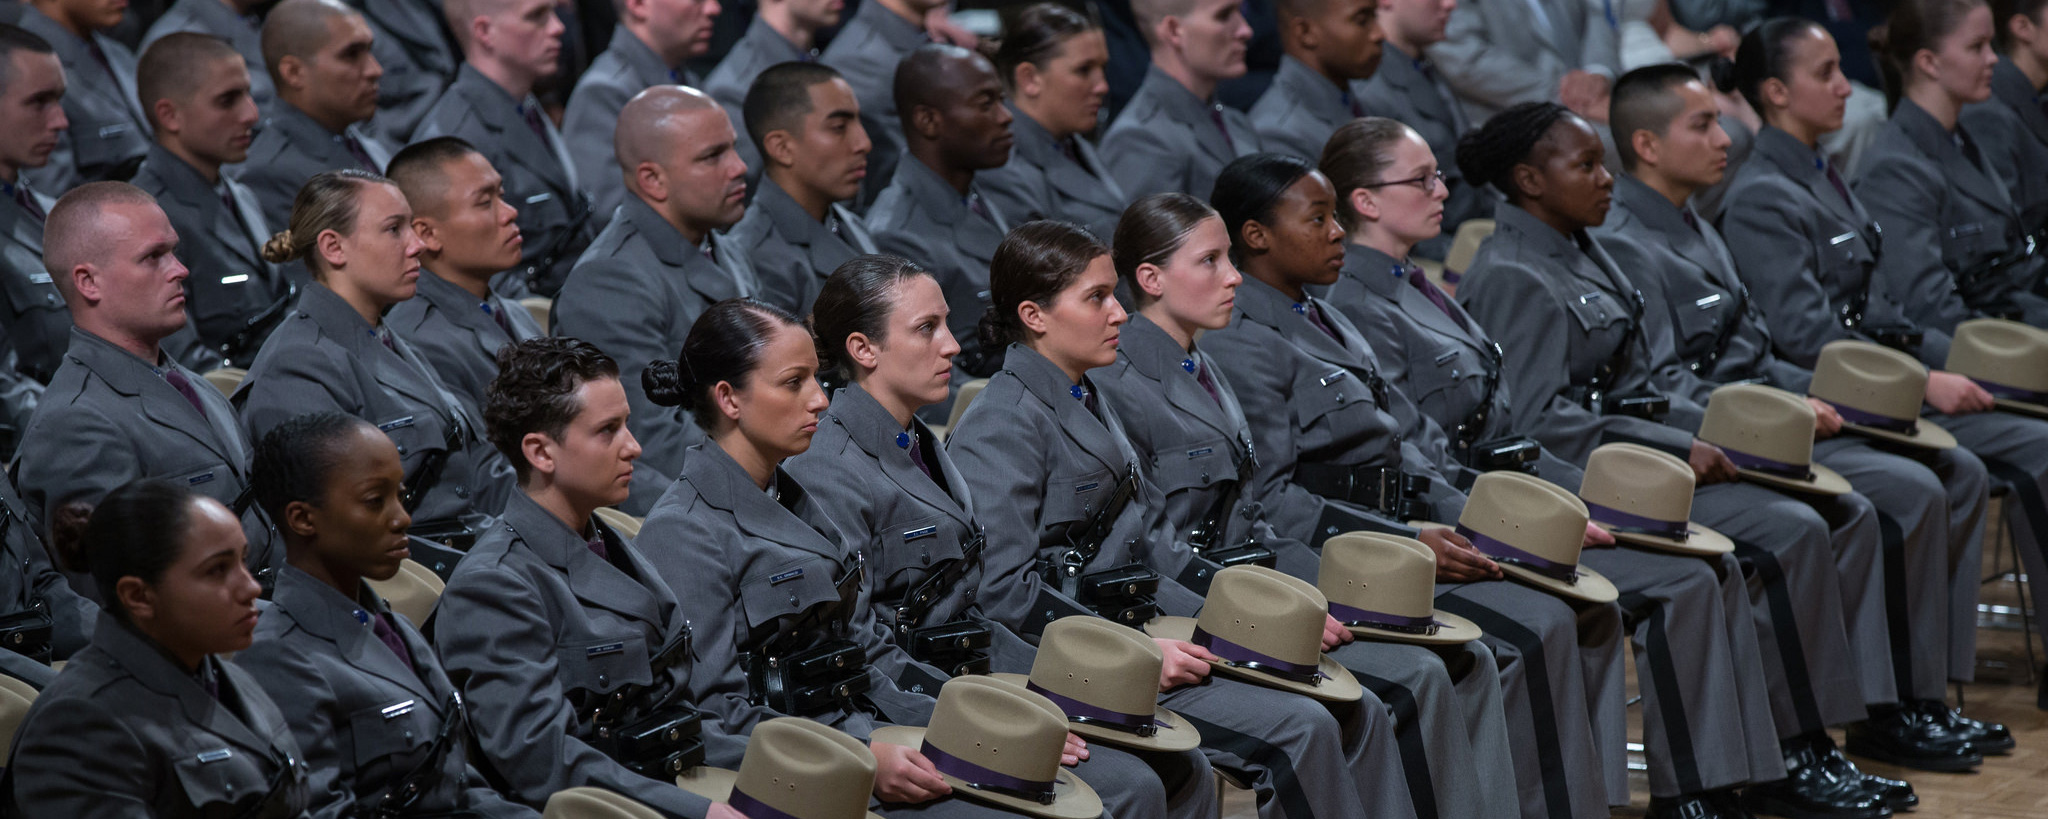 Find Out How to Become a New York State Trooper | The State